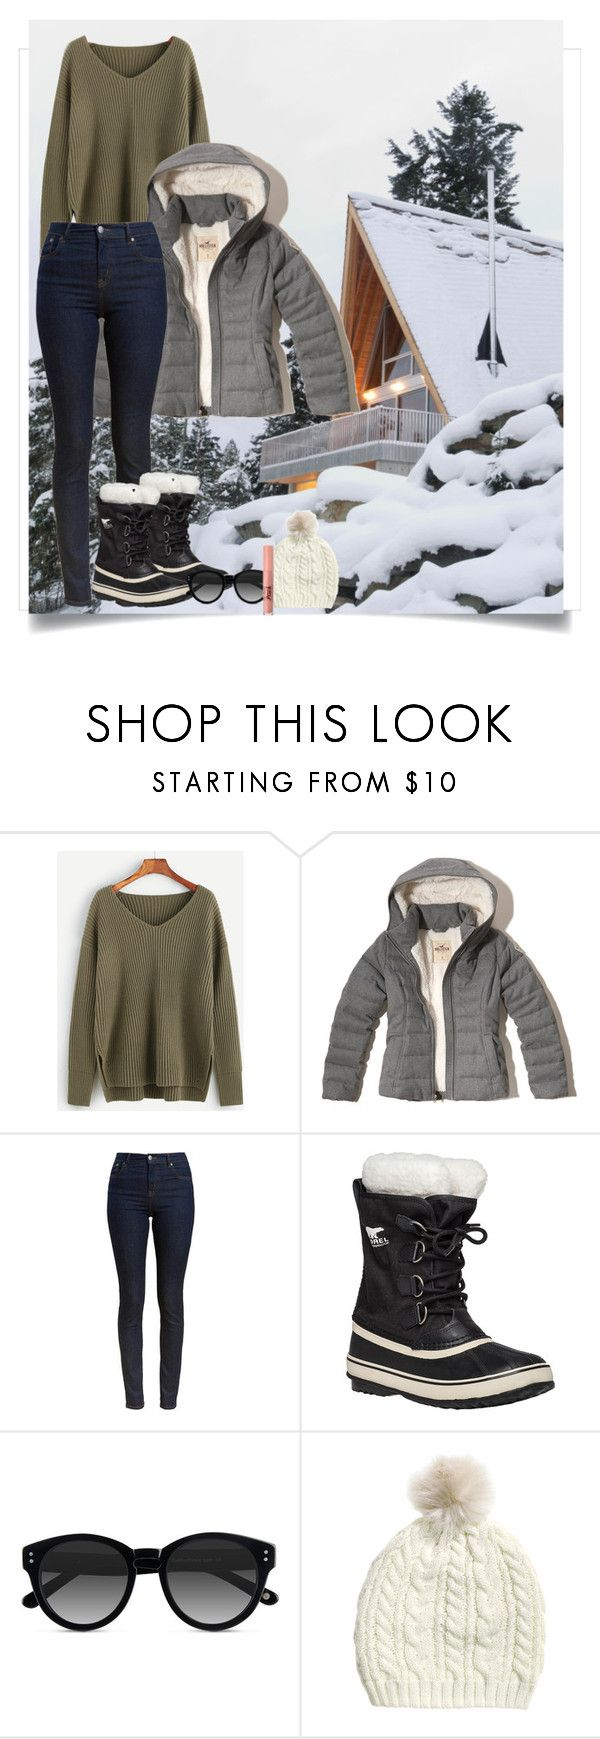 """#dressitjessistyle"" by jesswyatt ❤ liked on Polyvore featuring Hollister Co., Barbour, SOREL, Ace and Too Faced Cosmetics"